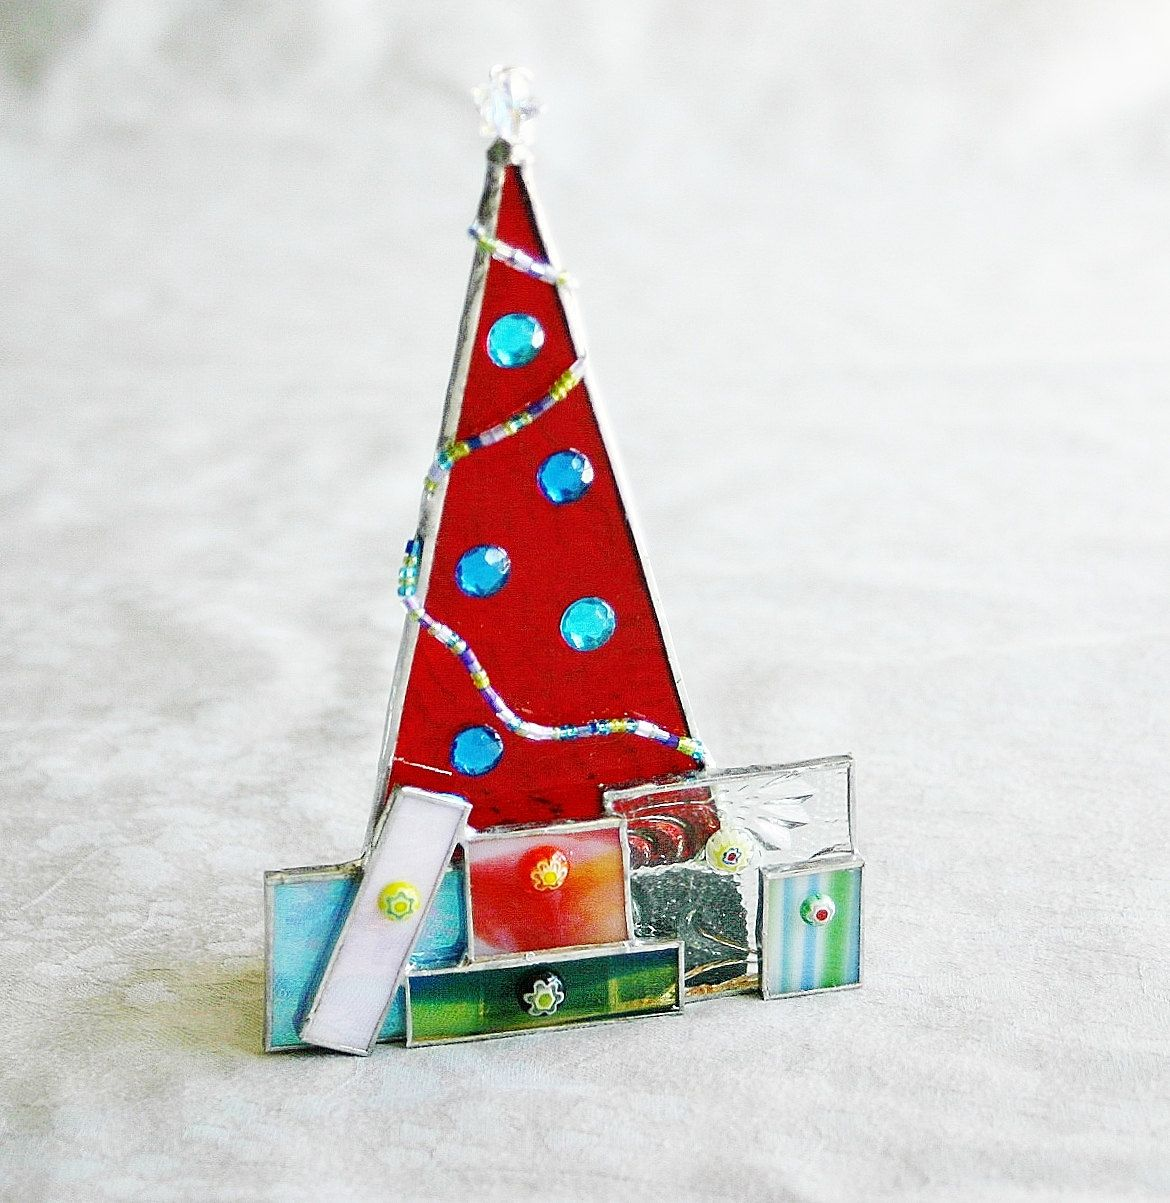 Diy Stained Glass Ornament Kit Christmas Tree W Presents